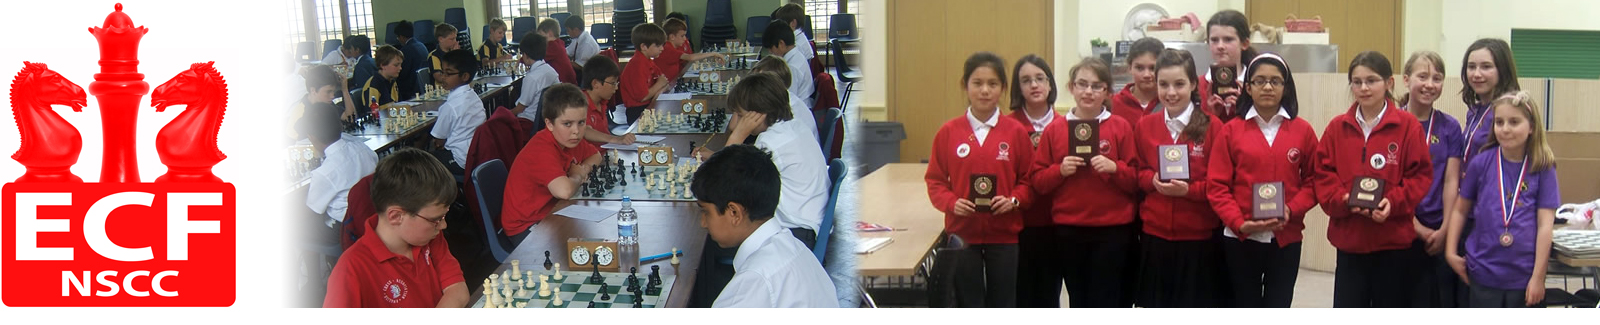 National Schools Chess Championships